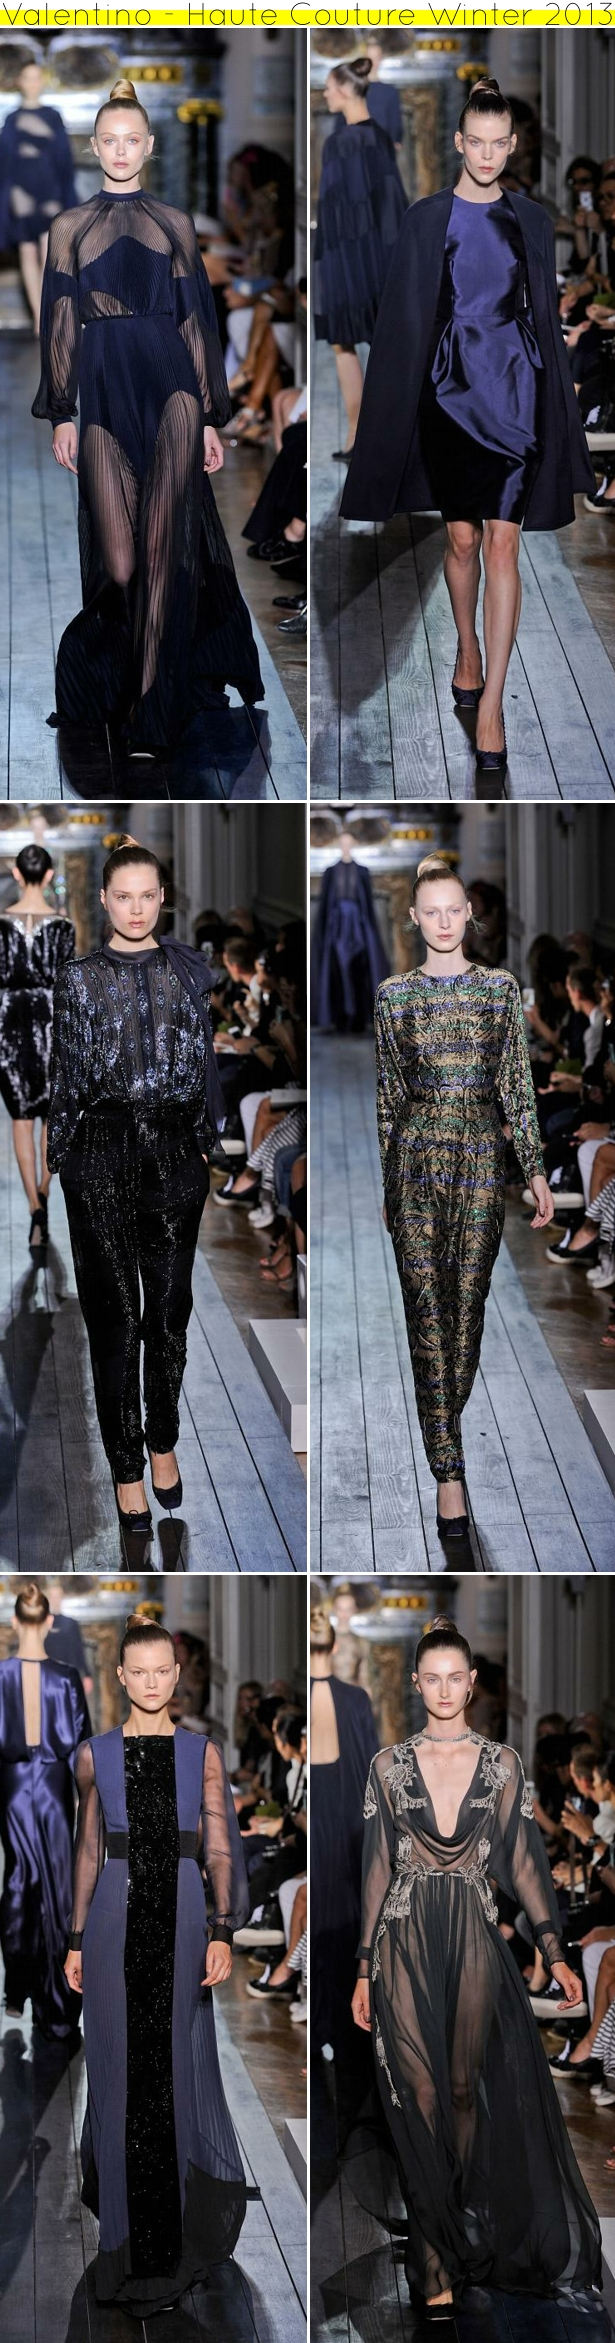 Valentino Haute Couture Winter 2013 Valentino blue!